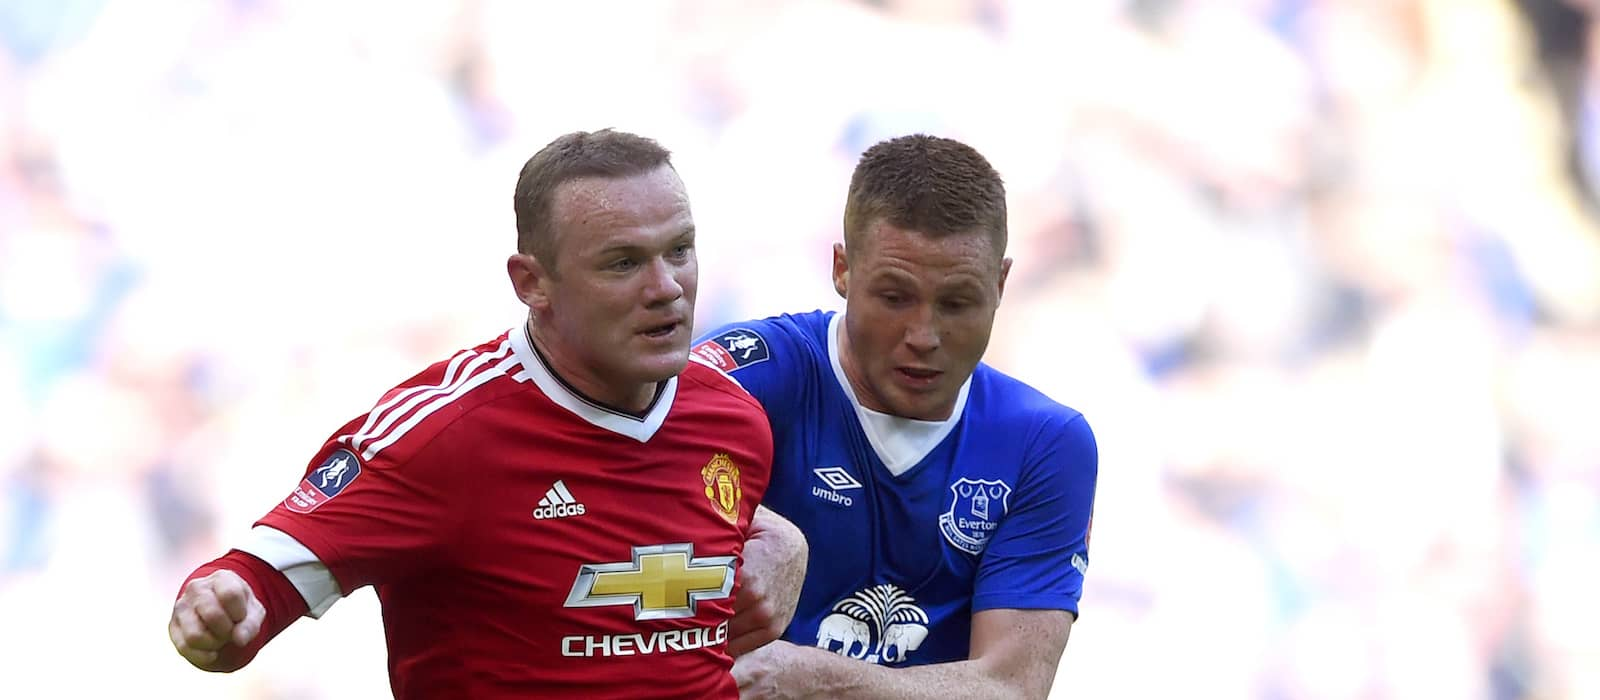 Louis van Gaal: Wayne Rooney can contribute more as a midfielder